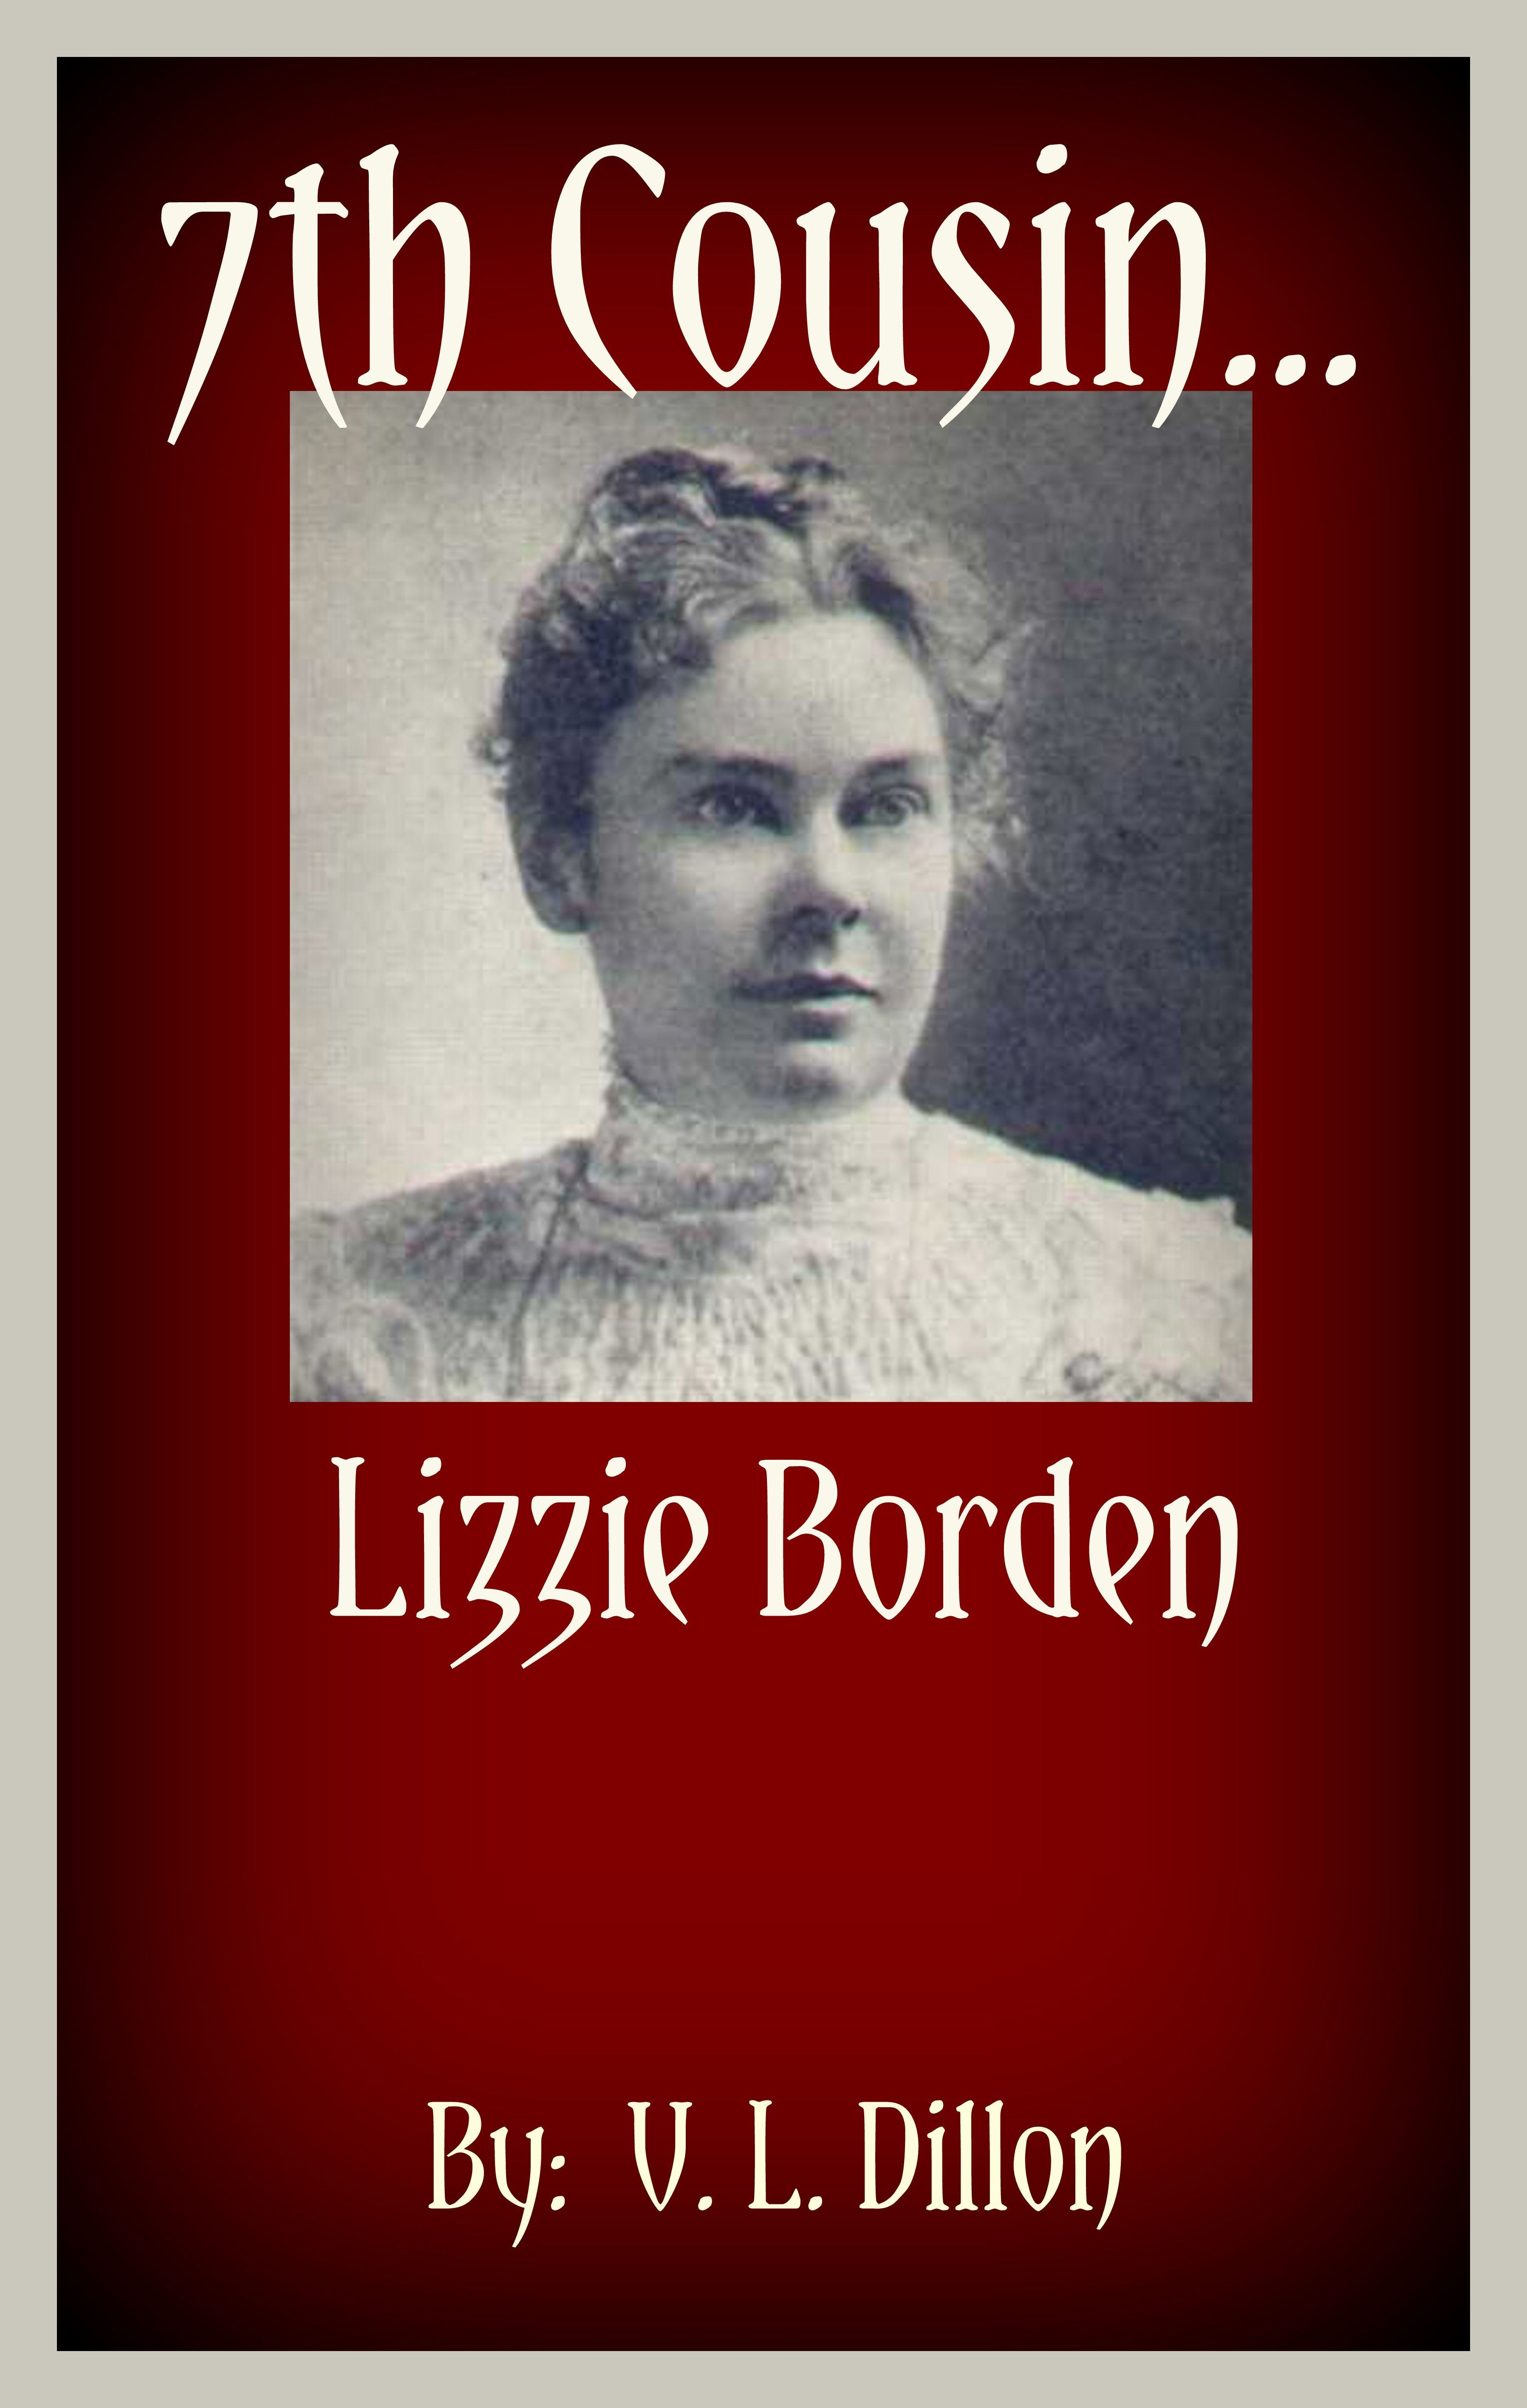 7th Cousin....Lizzie Borden